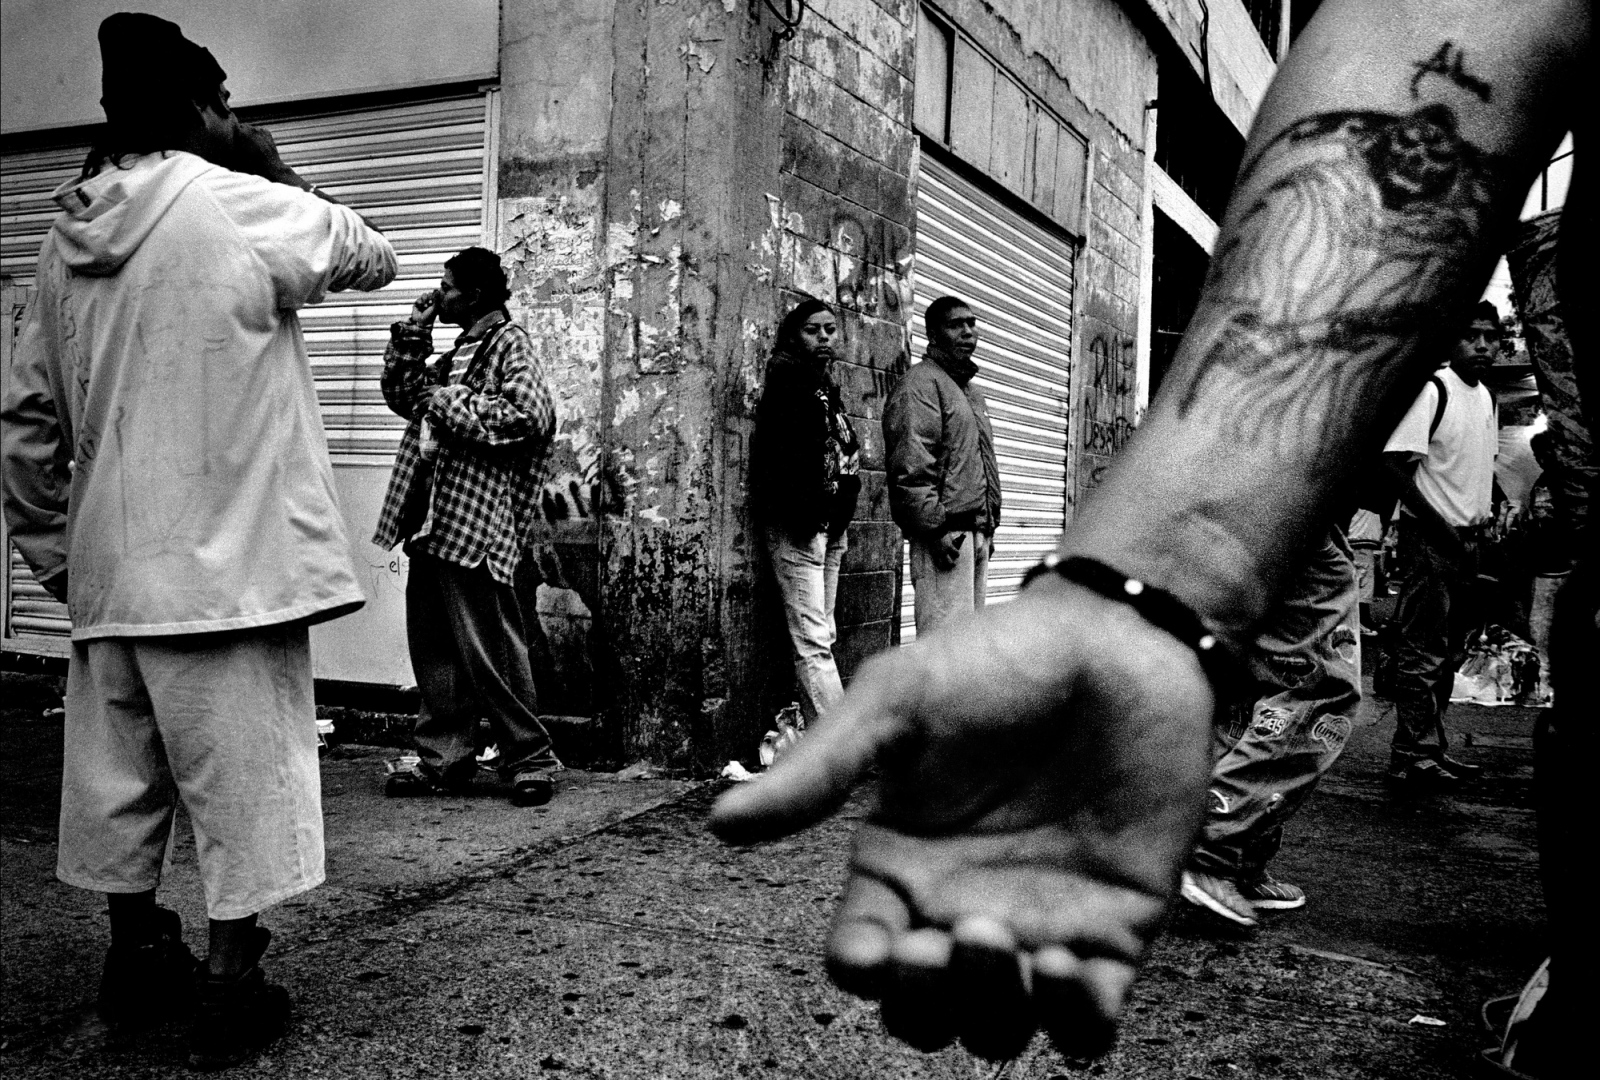 Drug abusers huff glue and inhalants while dealers ply their trade on the streets of Tepito, Mexico City's toughest neighborhood. Tepito is controlled by drug cartels, and access to the neighborhood is strictly guarded. Police are only allowed to patrol its streets 2 days a week.